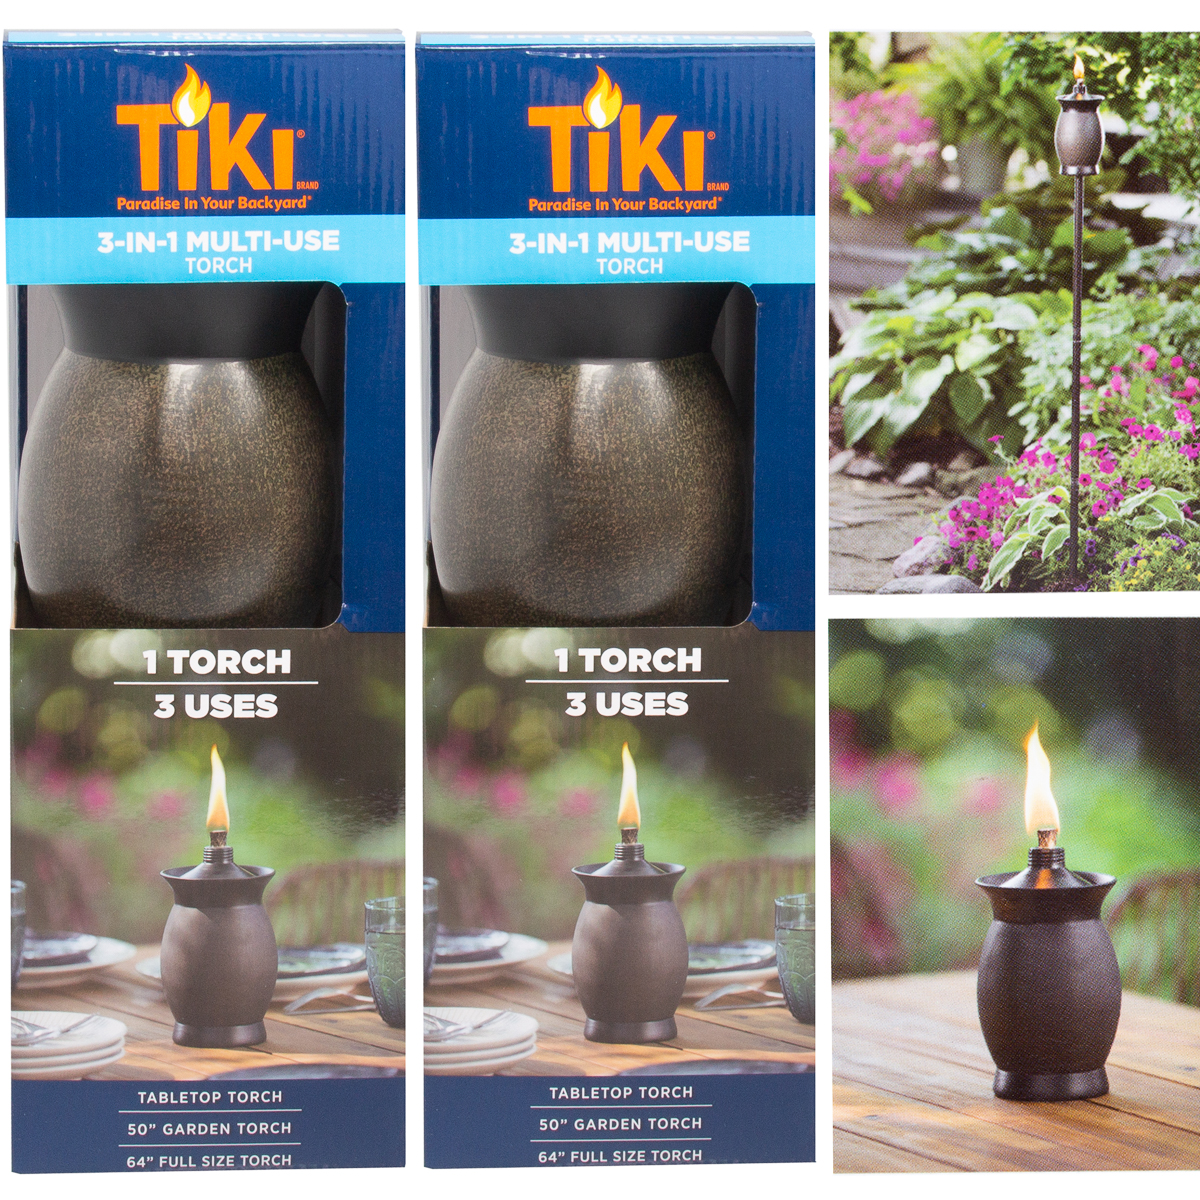 3-in-1 Tiki Torches 8 Inch Outdoor Table Lamp 50 Inch Garden Torch 64 Inch Yard Lamp Post Light Tropical Decor For Patio